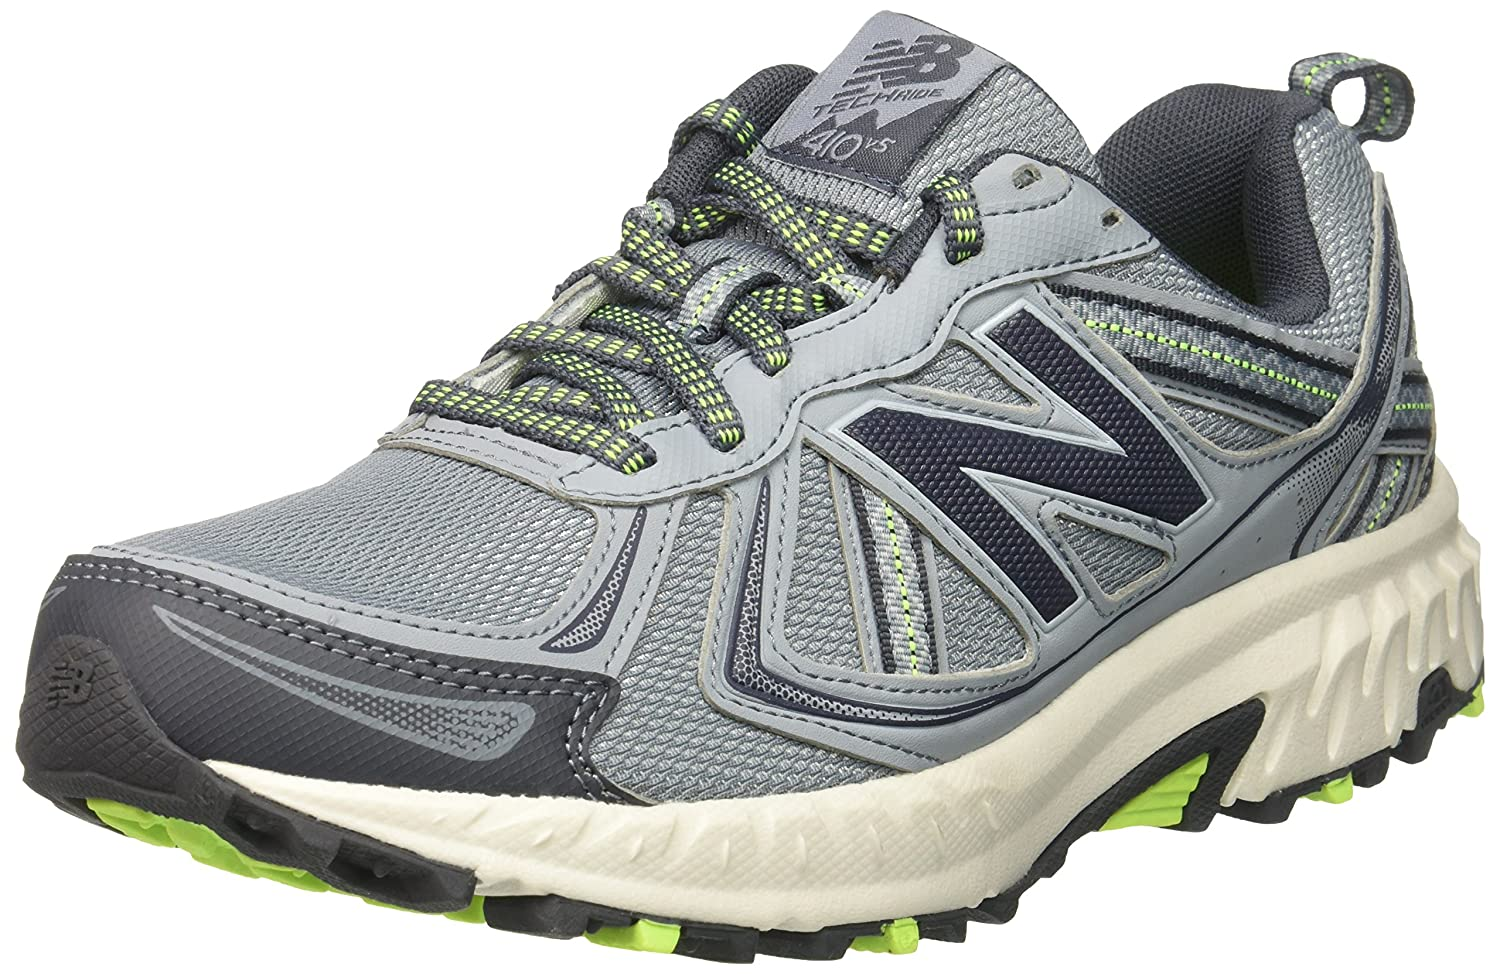 New Balance Women's WT410v5 Cushioning Trail B(M) Running Shoe B01LXNZ5I9 8.5 B(M) Trail US|Light Grey 8f4d22